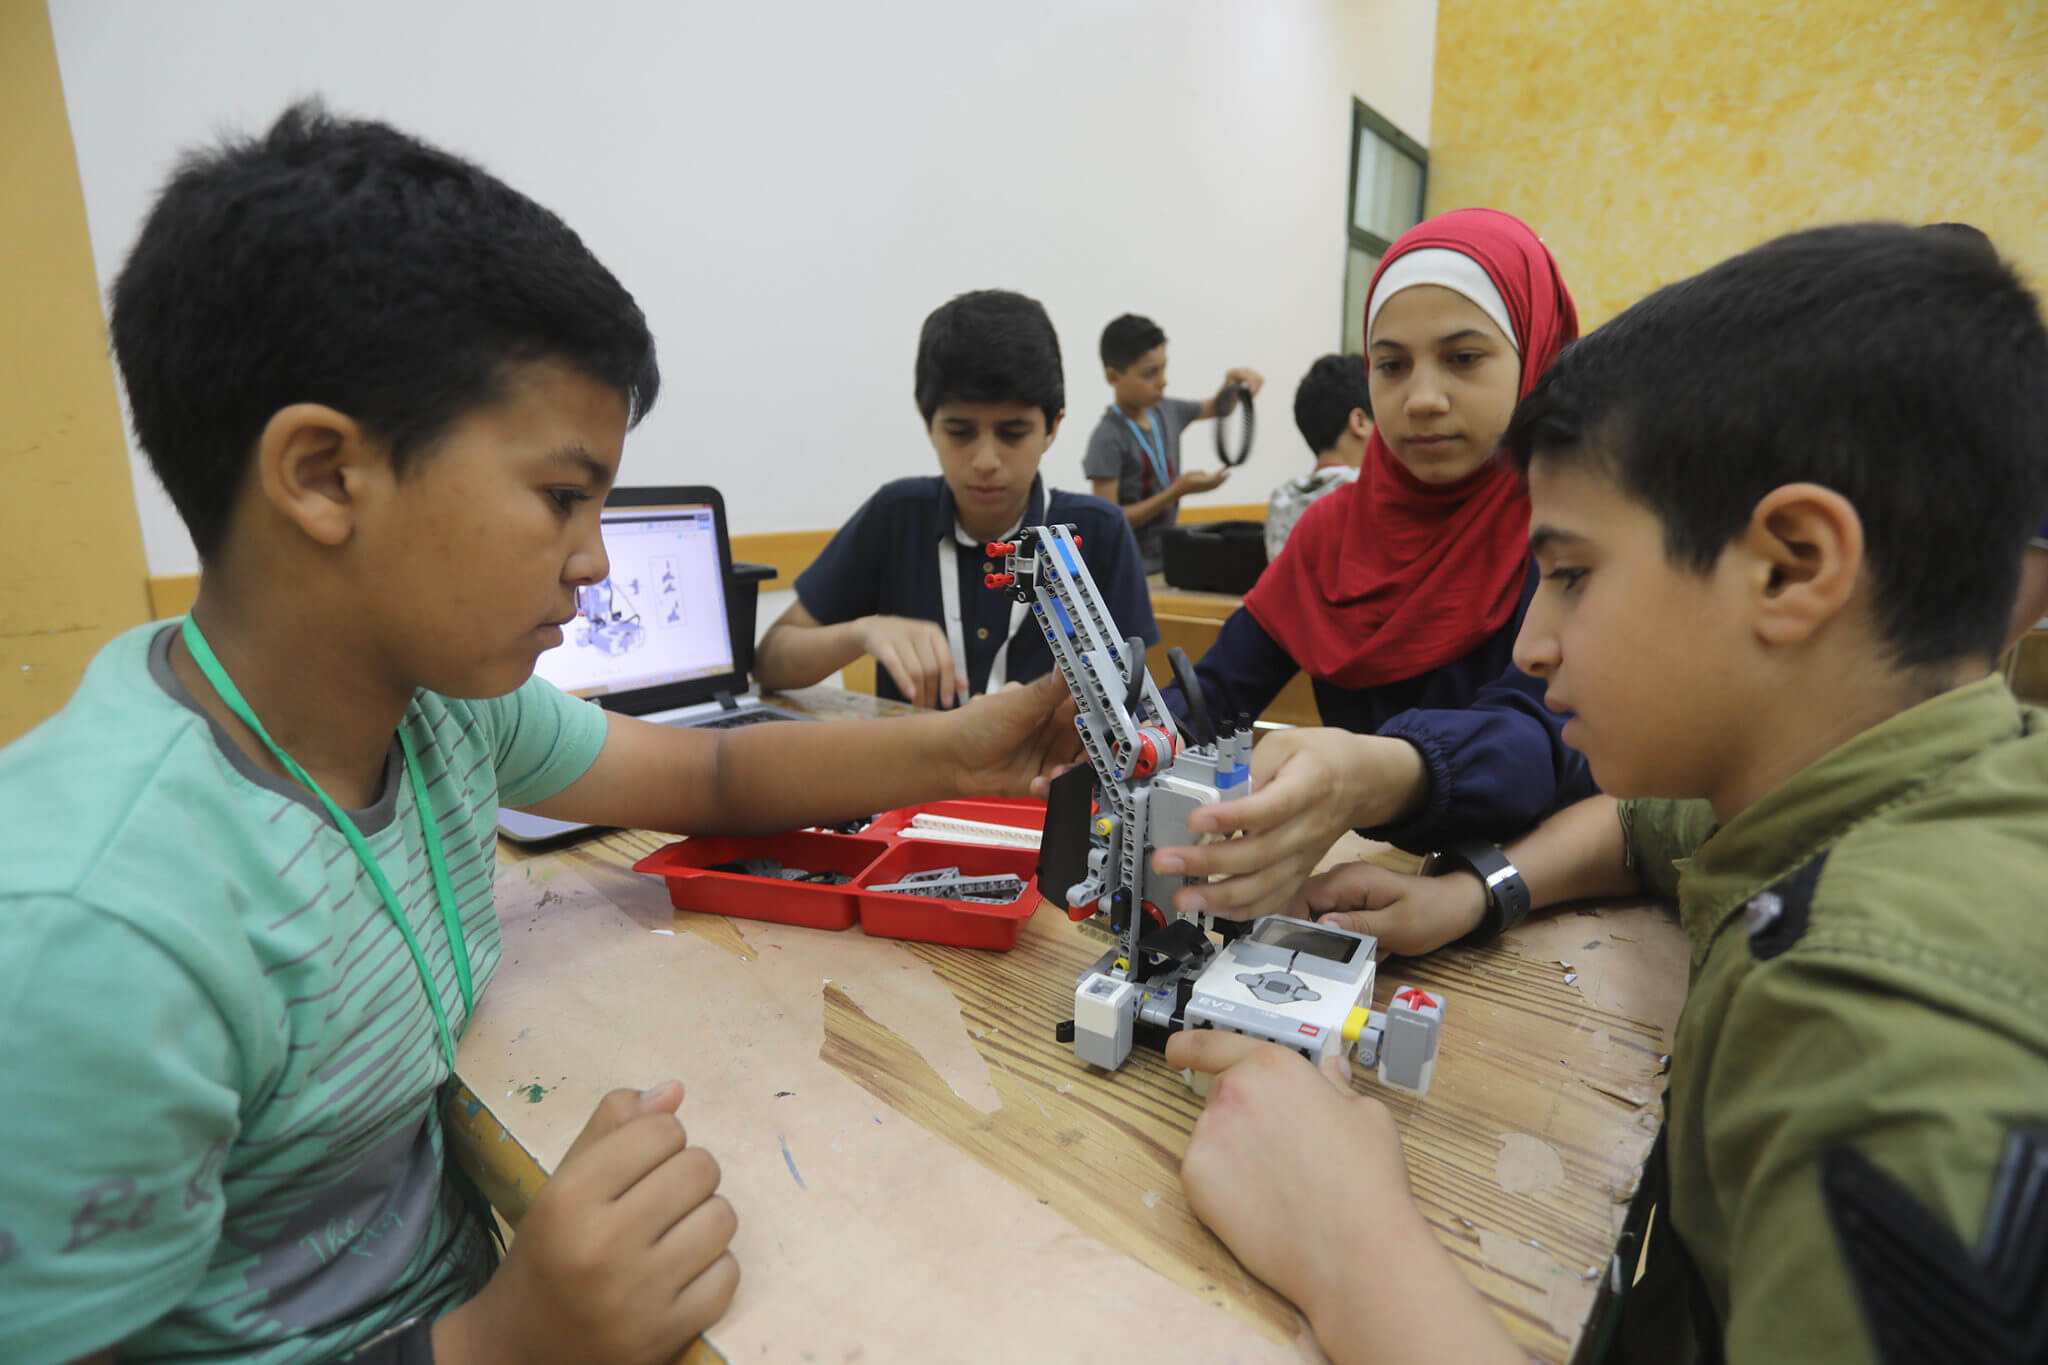 Youth learn the fundamentals of robot manufacturing in the Child Centre - Gaza Qattan Foundation